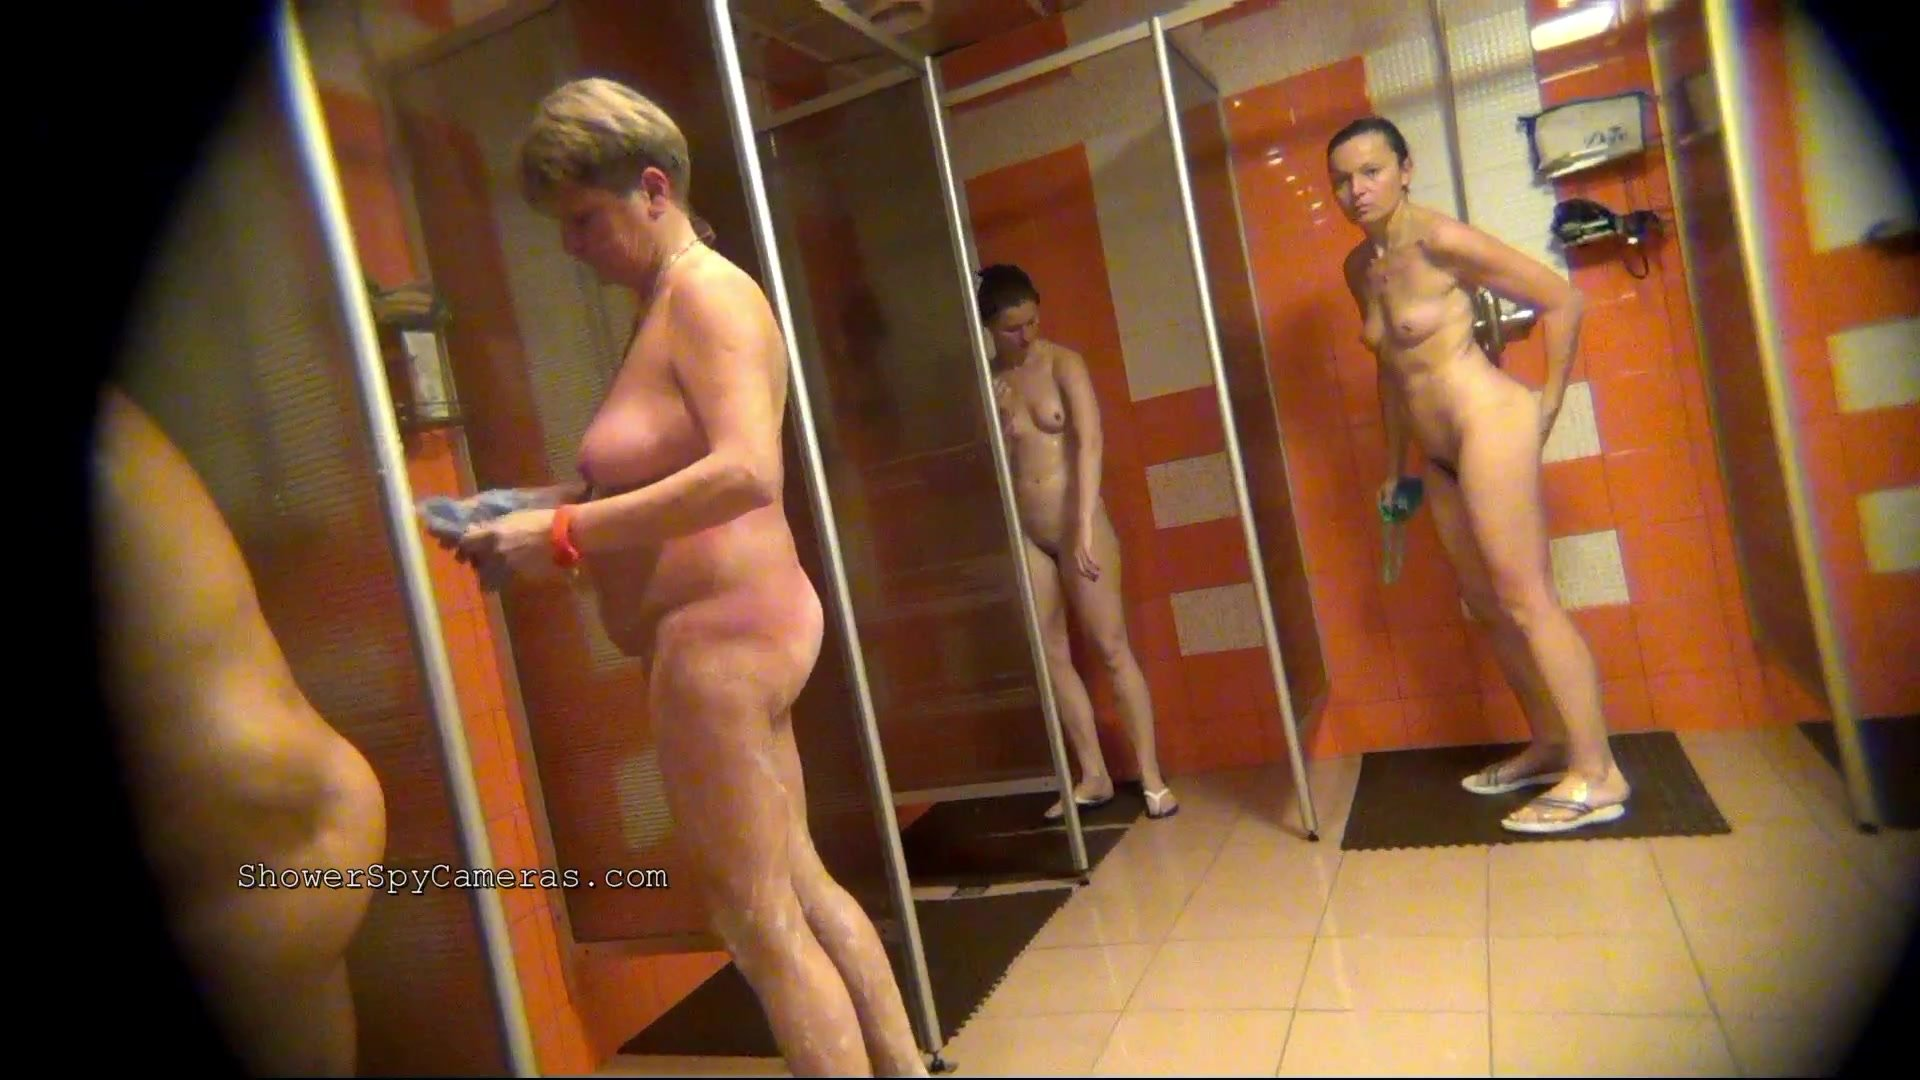 Naked guys on camera